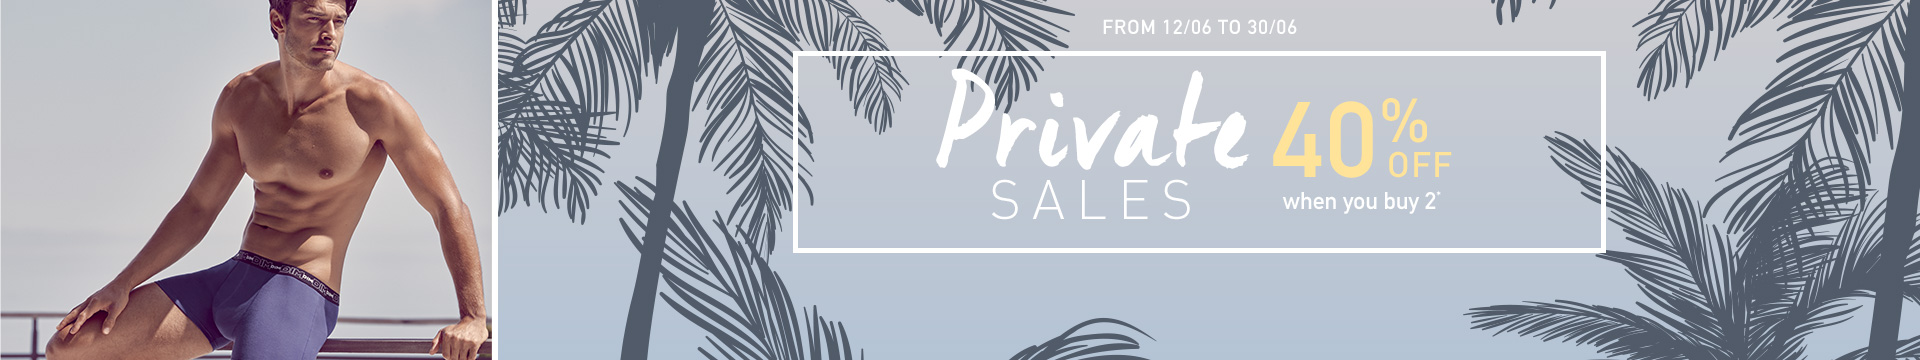 DIM Private sales Men